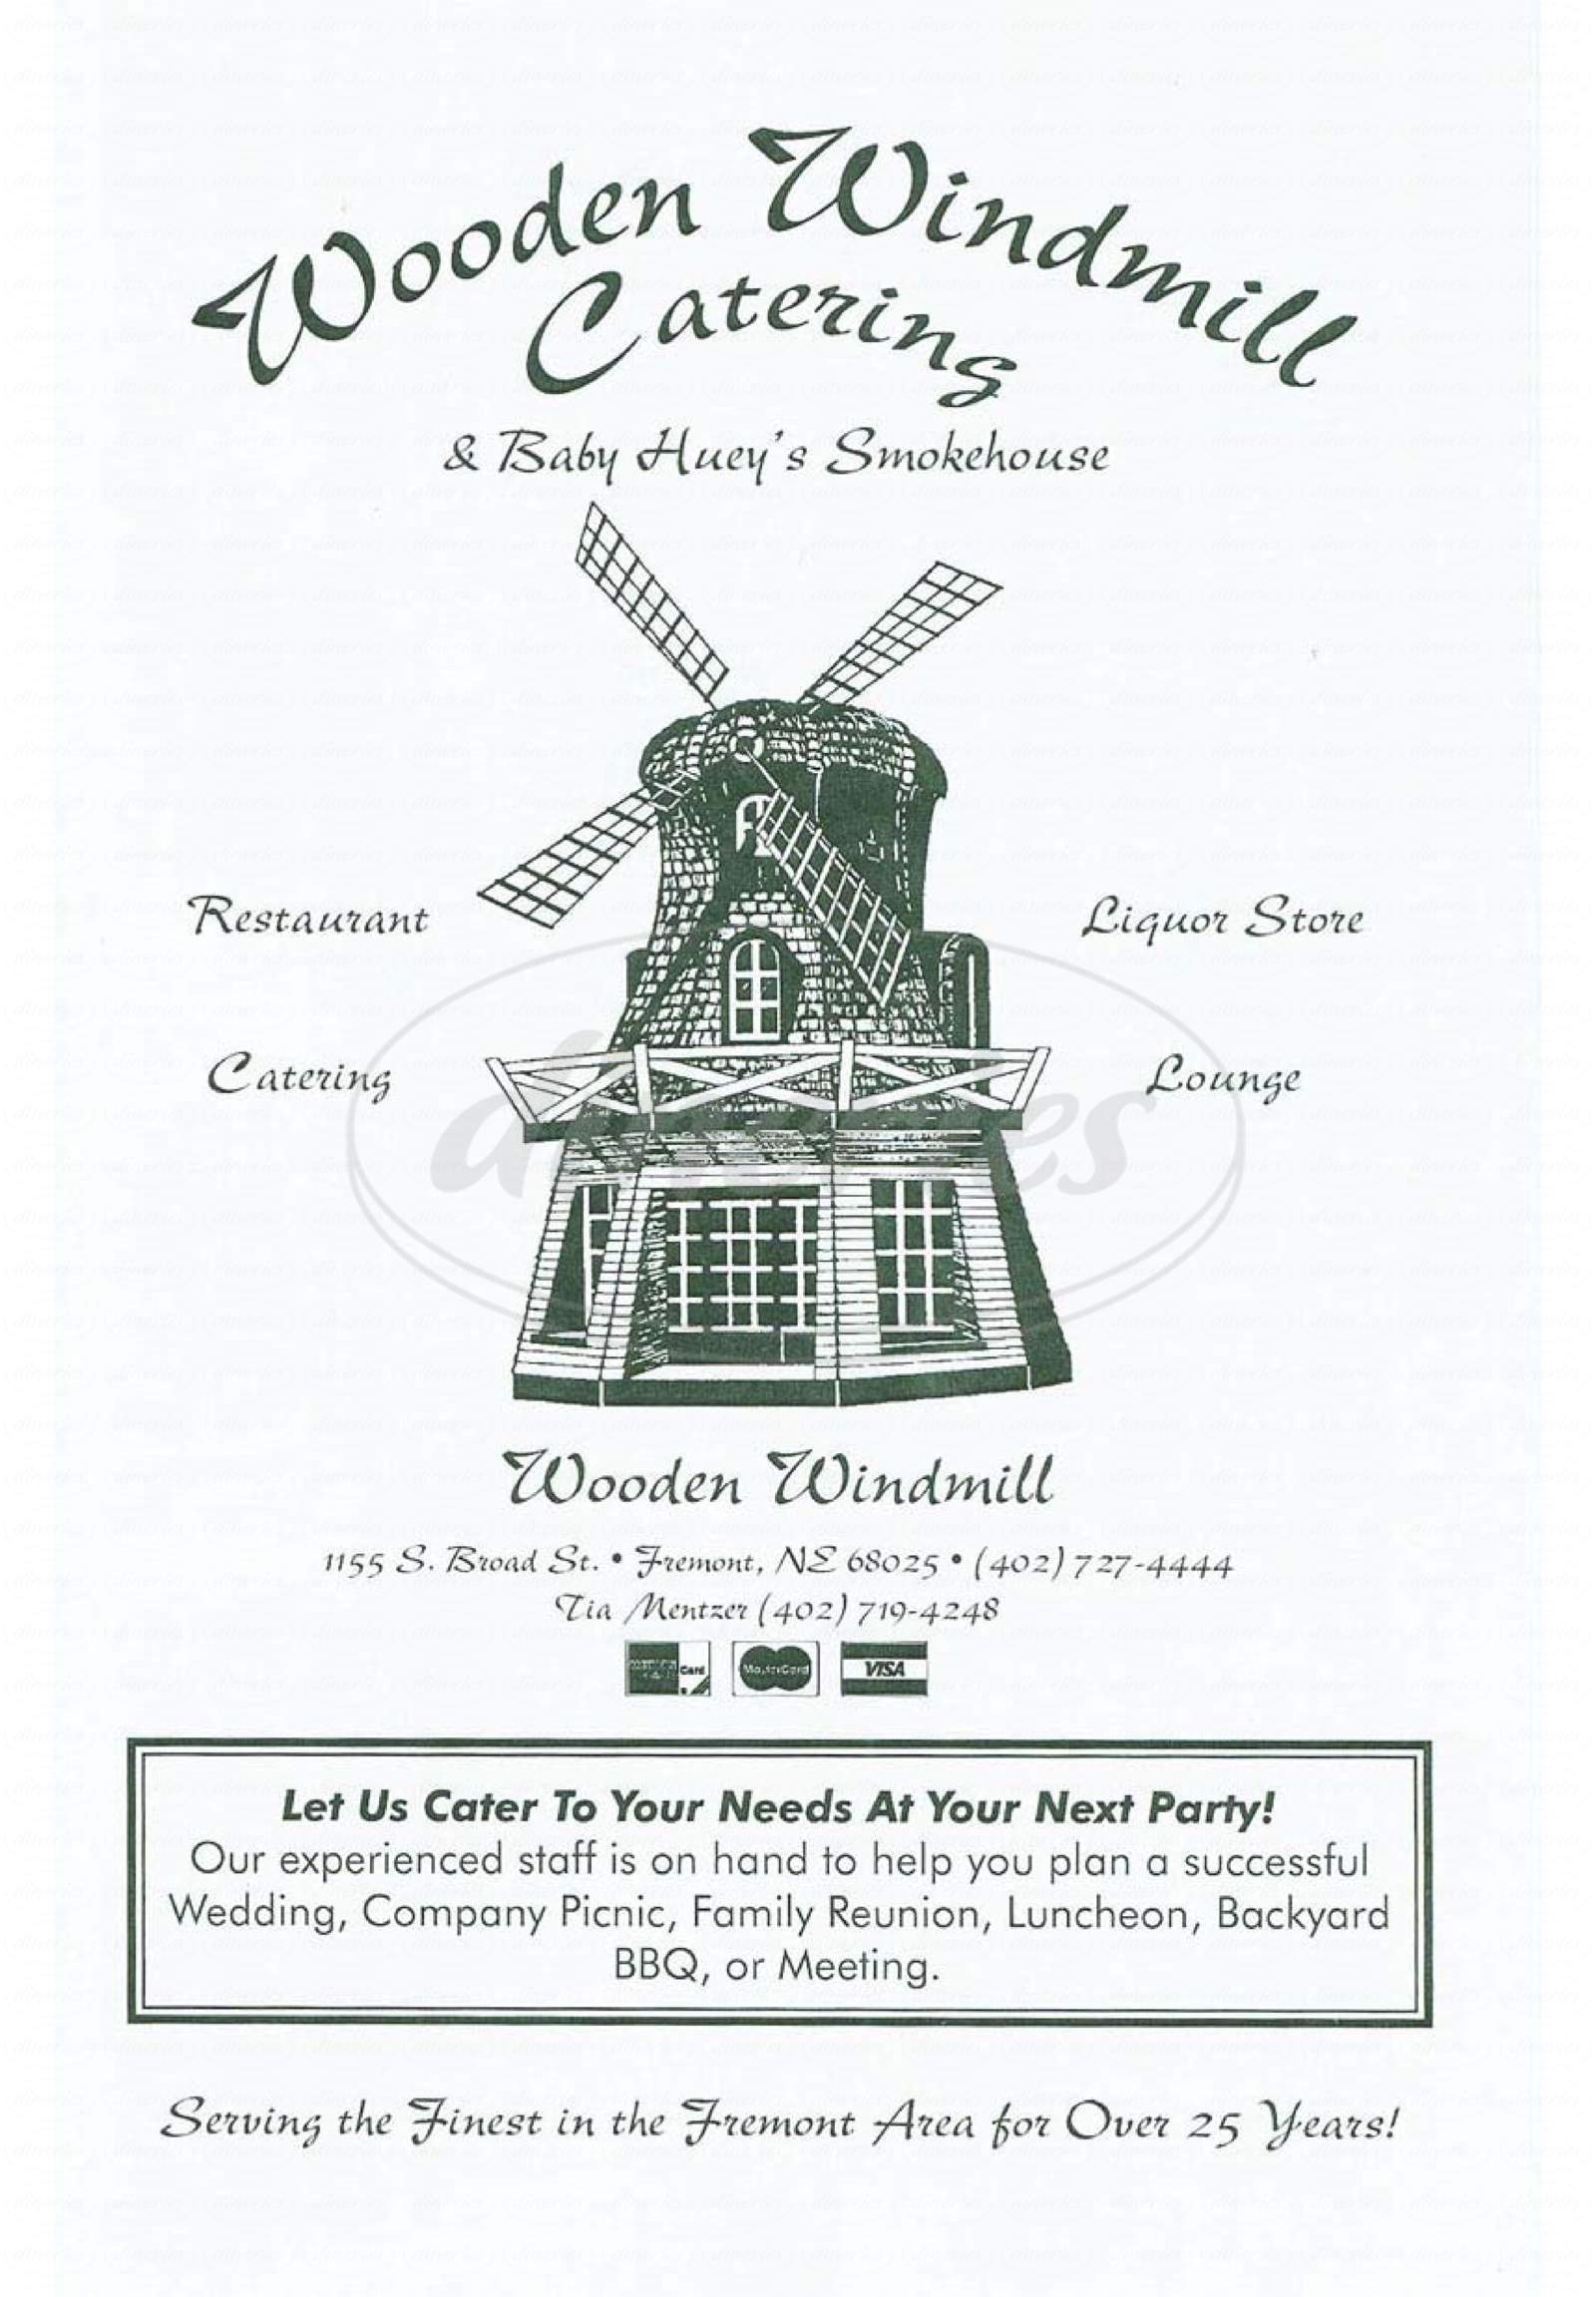 menu for Wooden Windmill